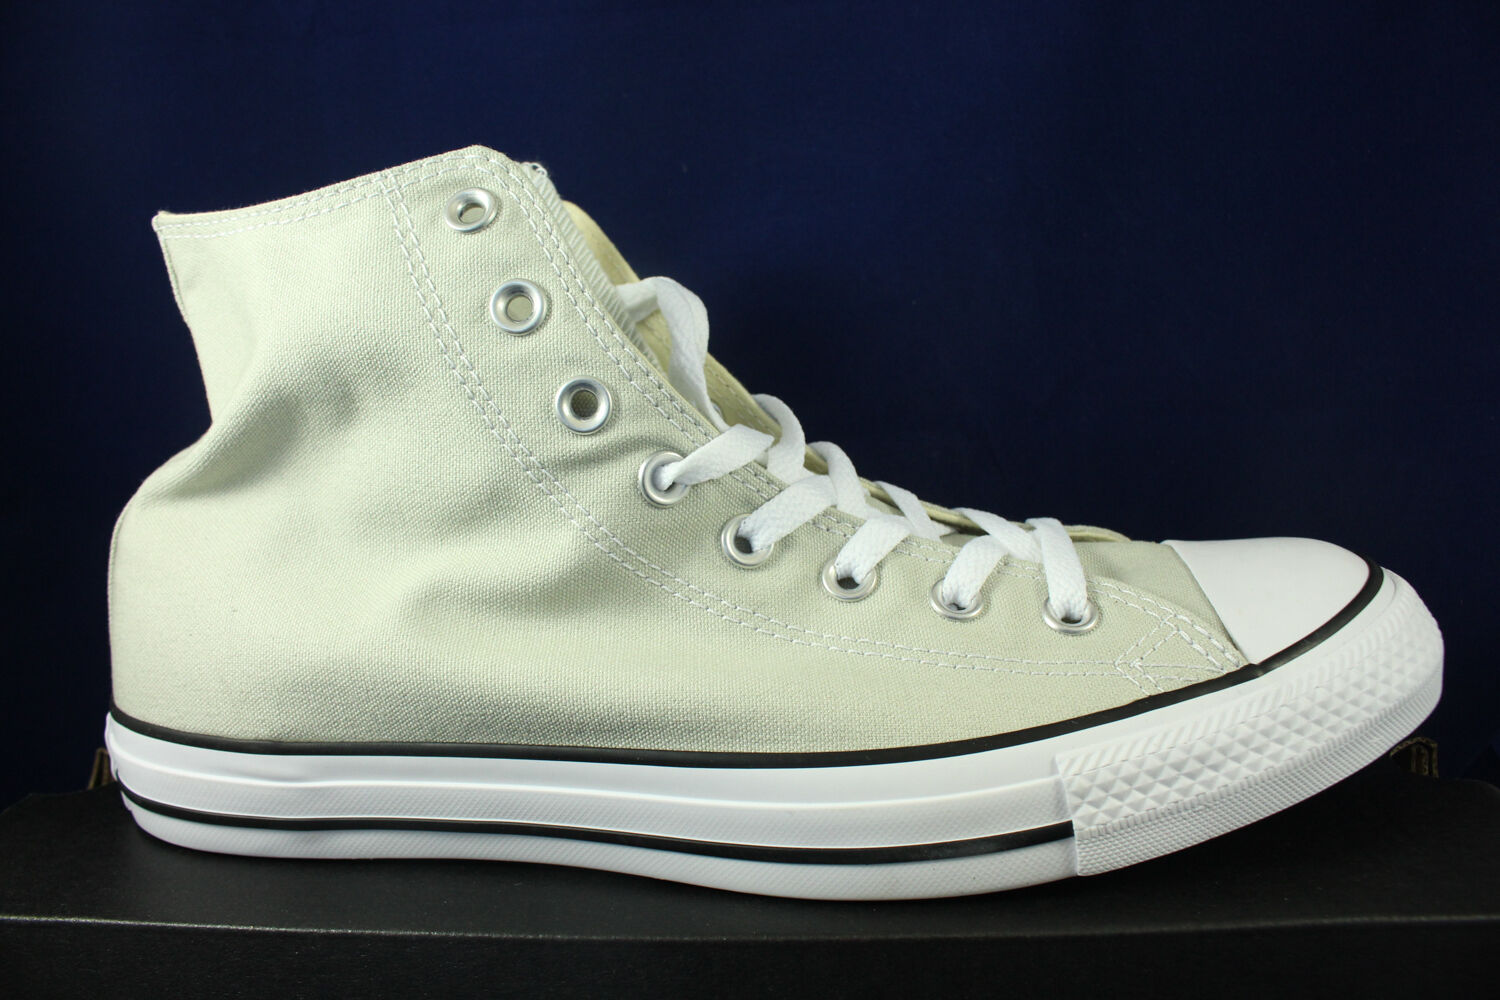 CONVERSE CHUCK TAYLOR ALL STAR CT AS HI LIGHT SURPLUS 155565F SZ 10